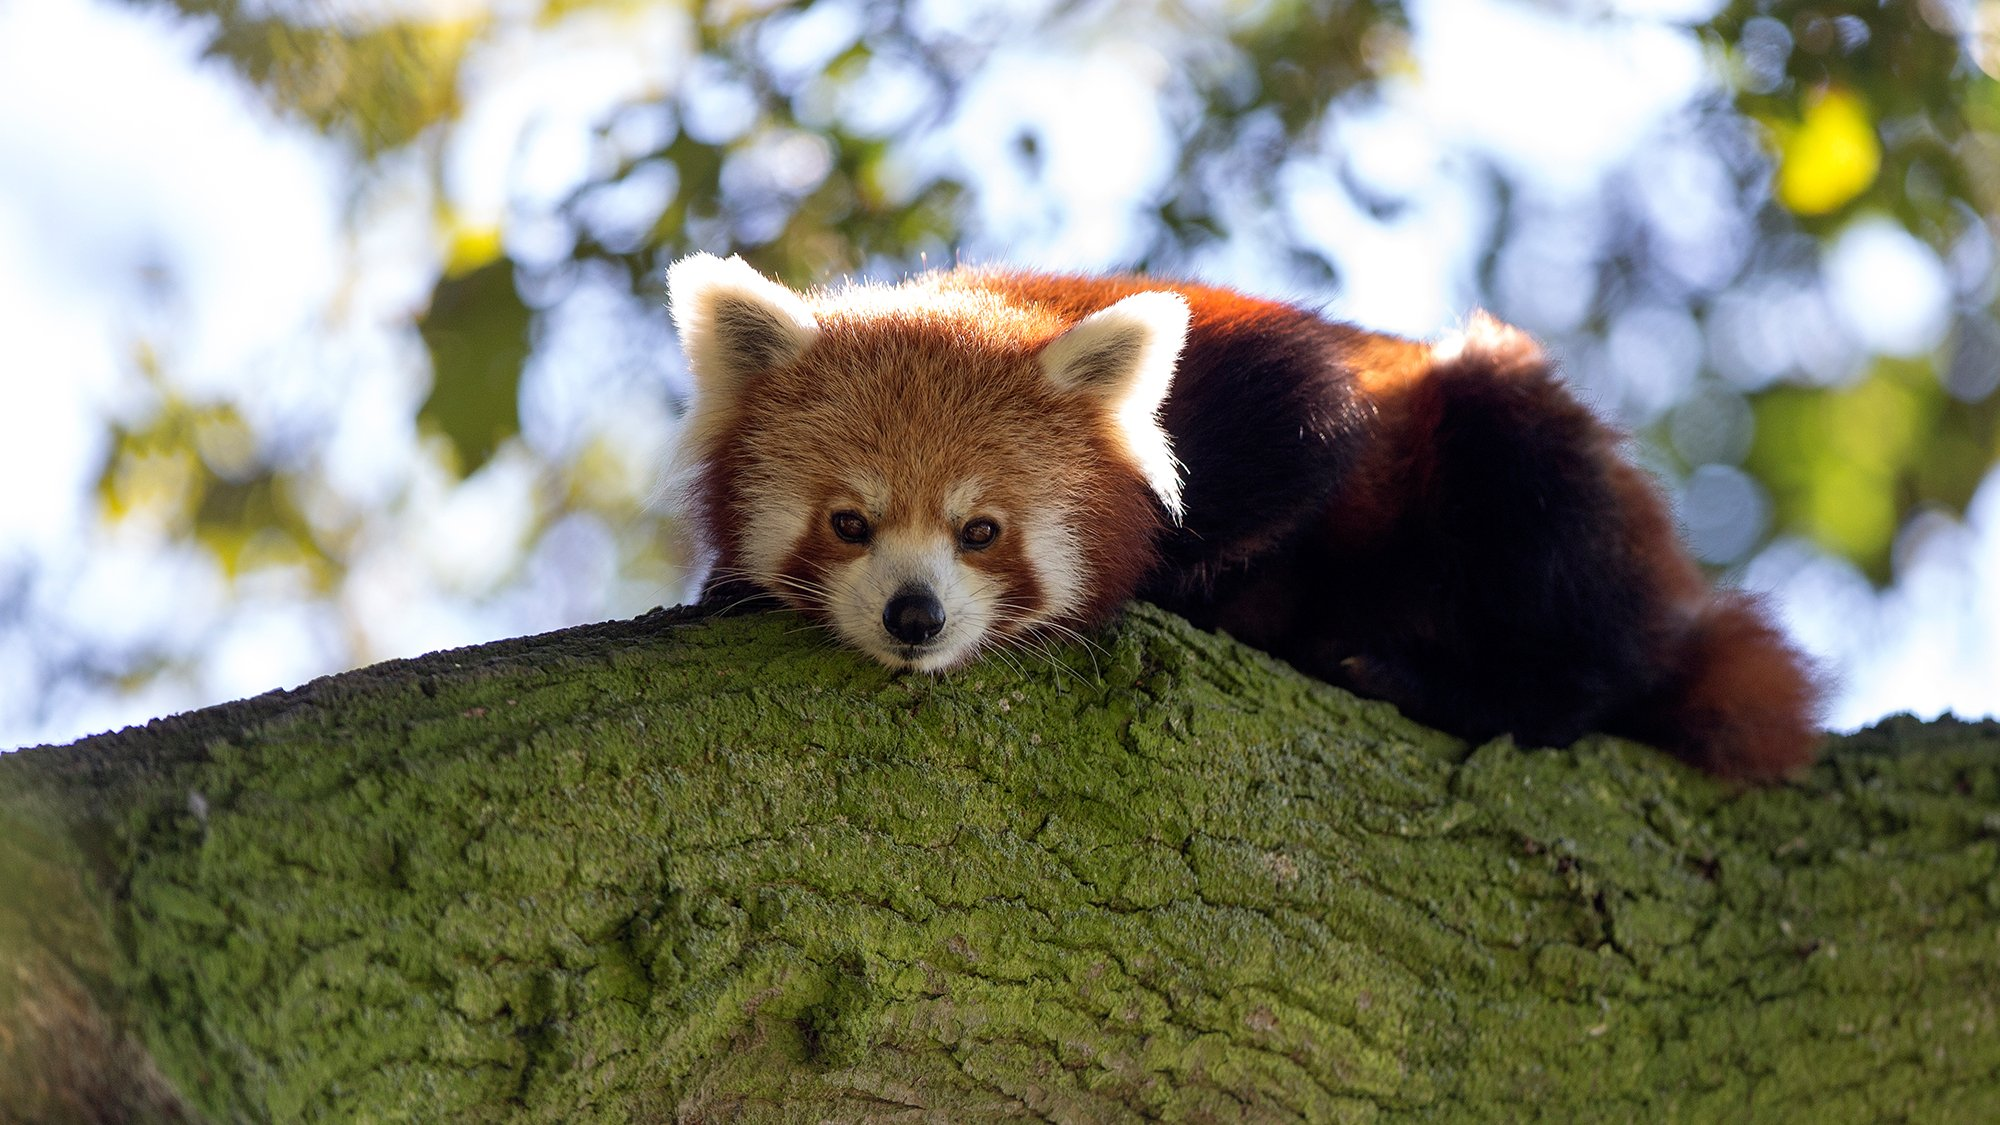 Hd Cute Panda Wallpaper Red Panda 2 Jpg